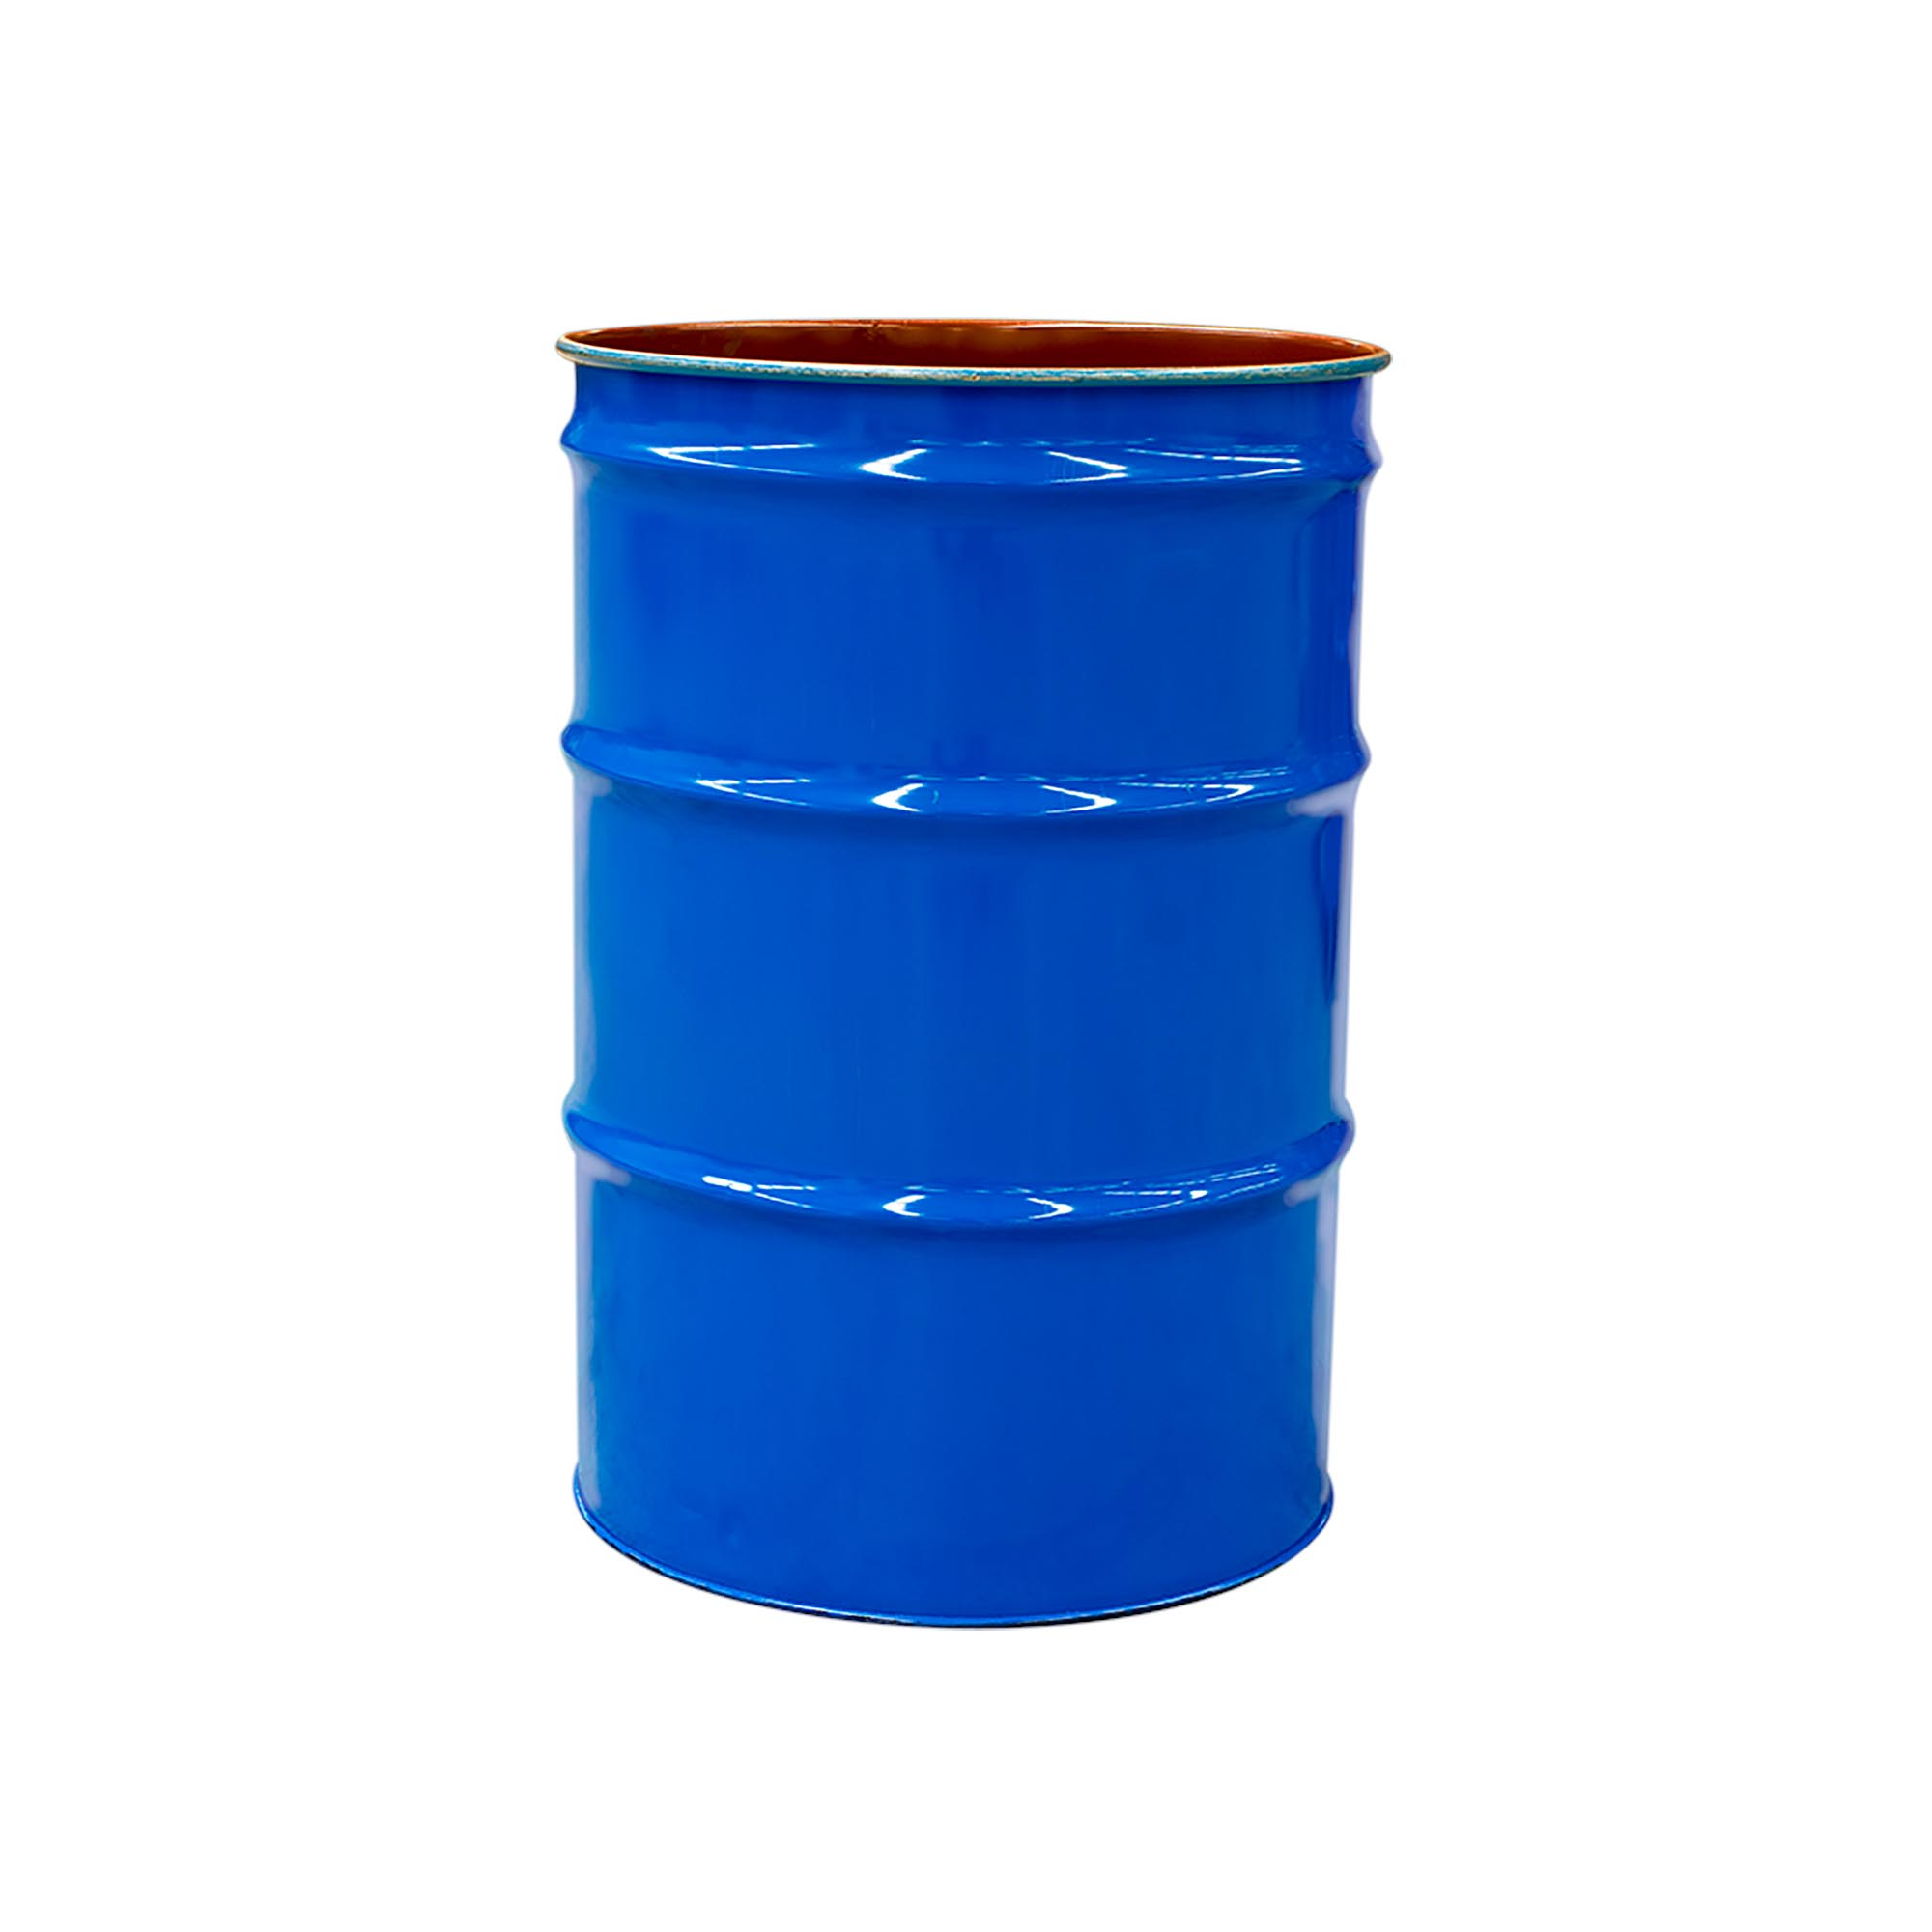 Model 901069-30 30 Gallon Open Top Drum only, no lid, no side latching ring